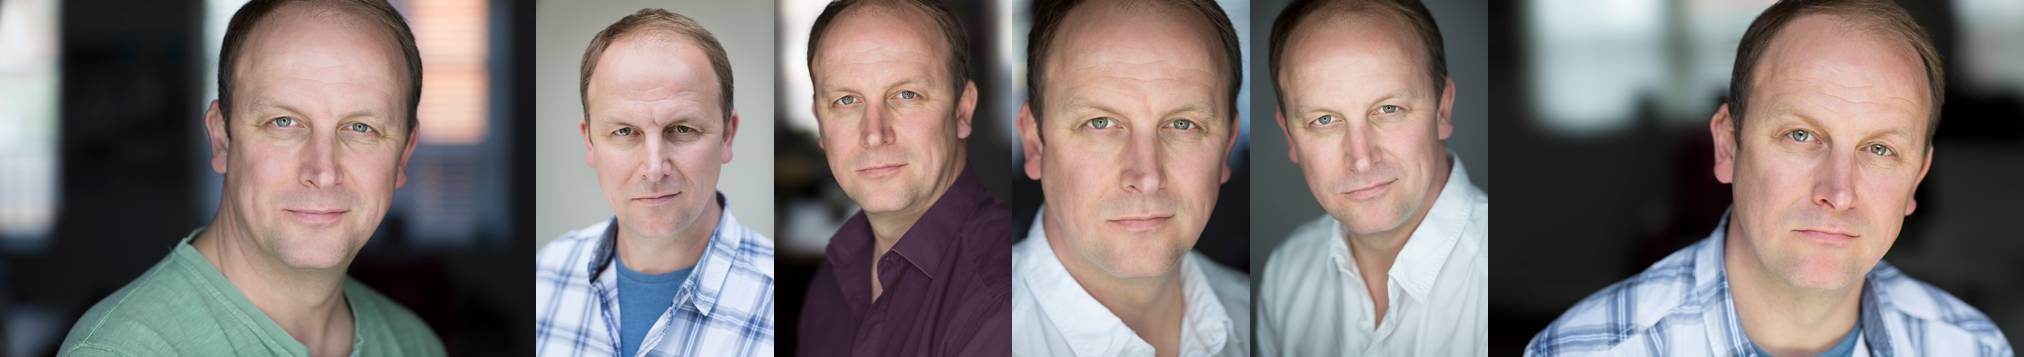 emma bullivant photography actors headshots london corporate portraits headshoteb1519-2